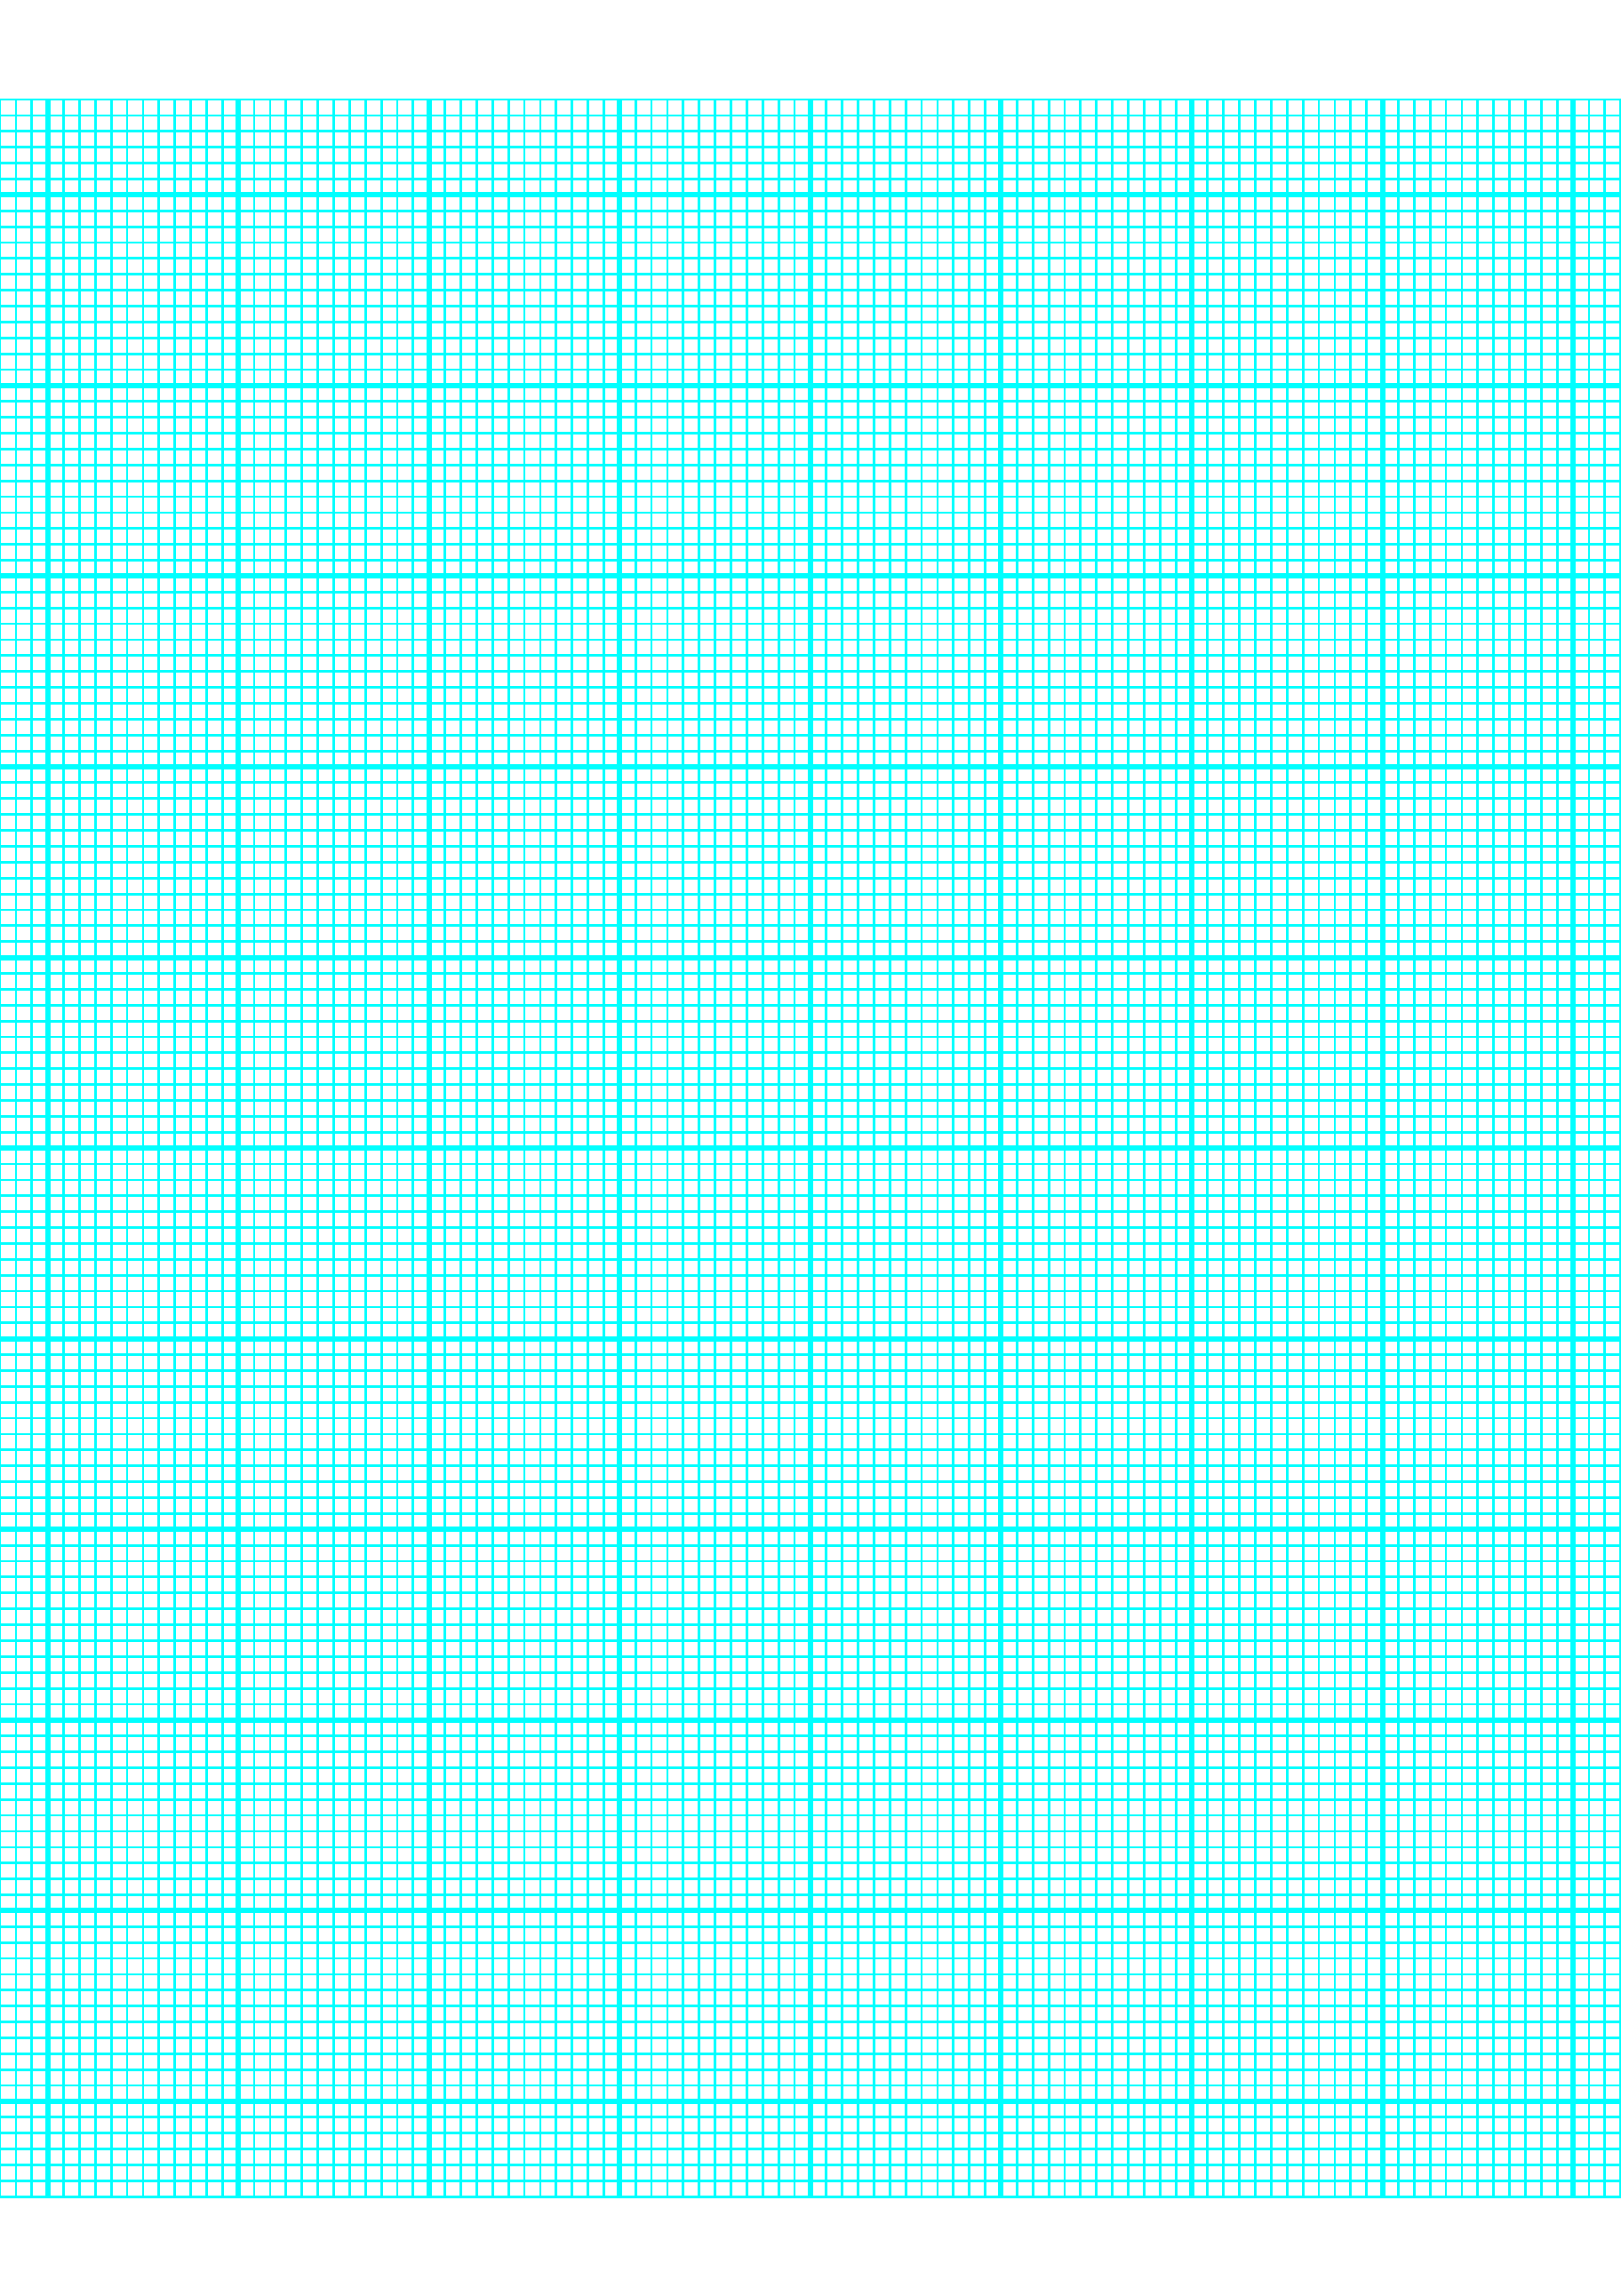 12 lines per inch graph paper on letter